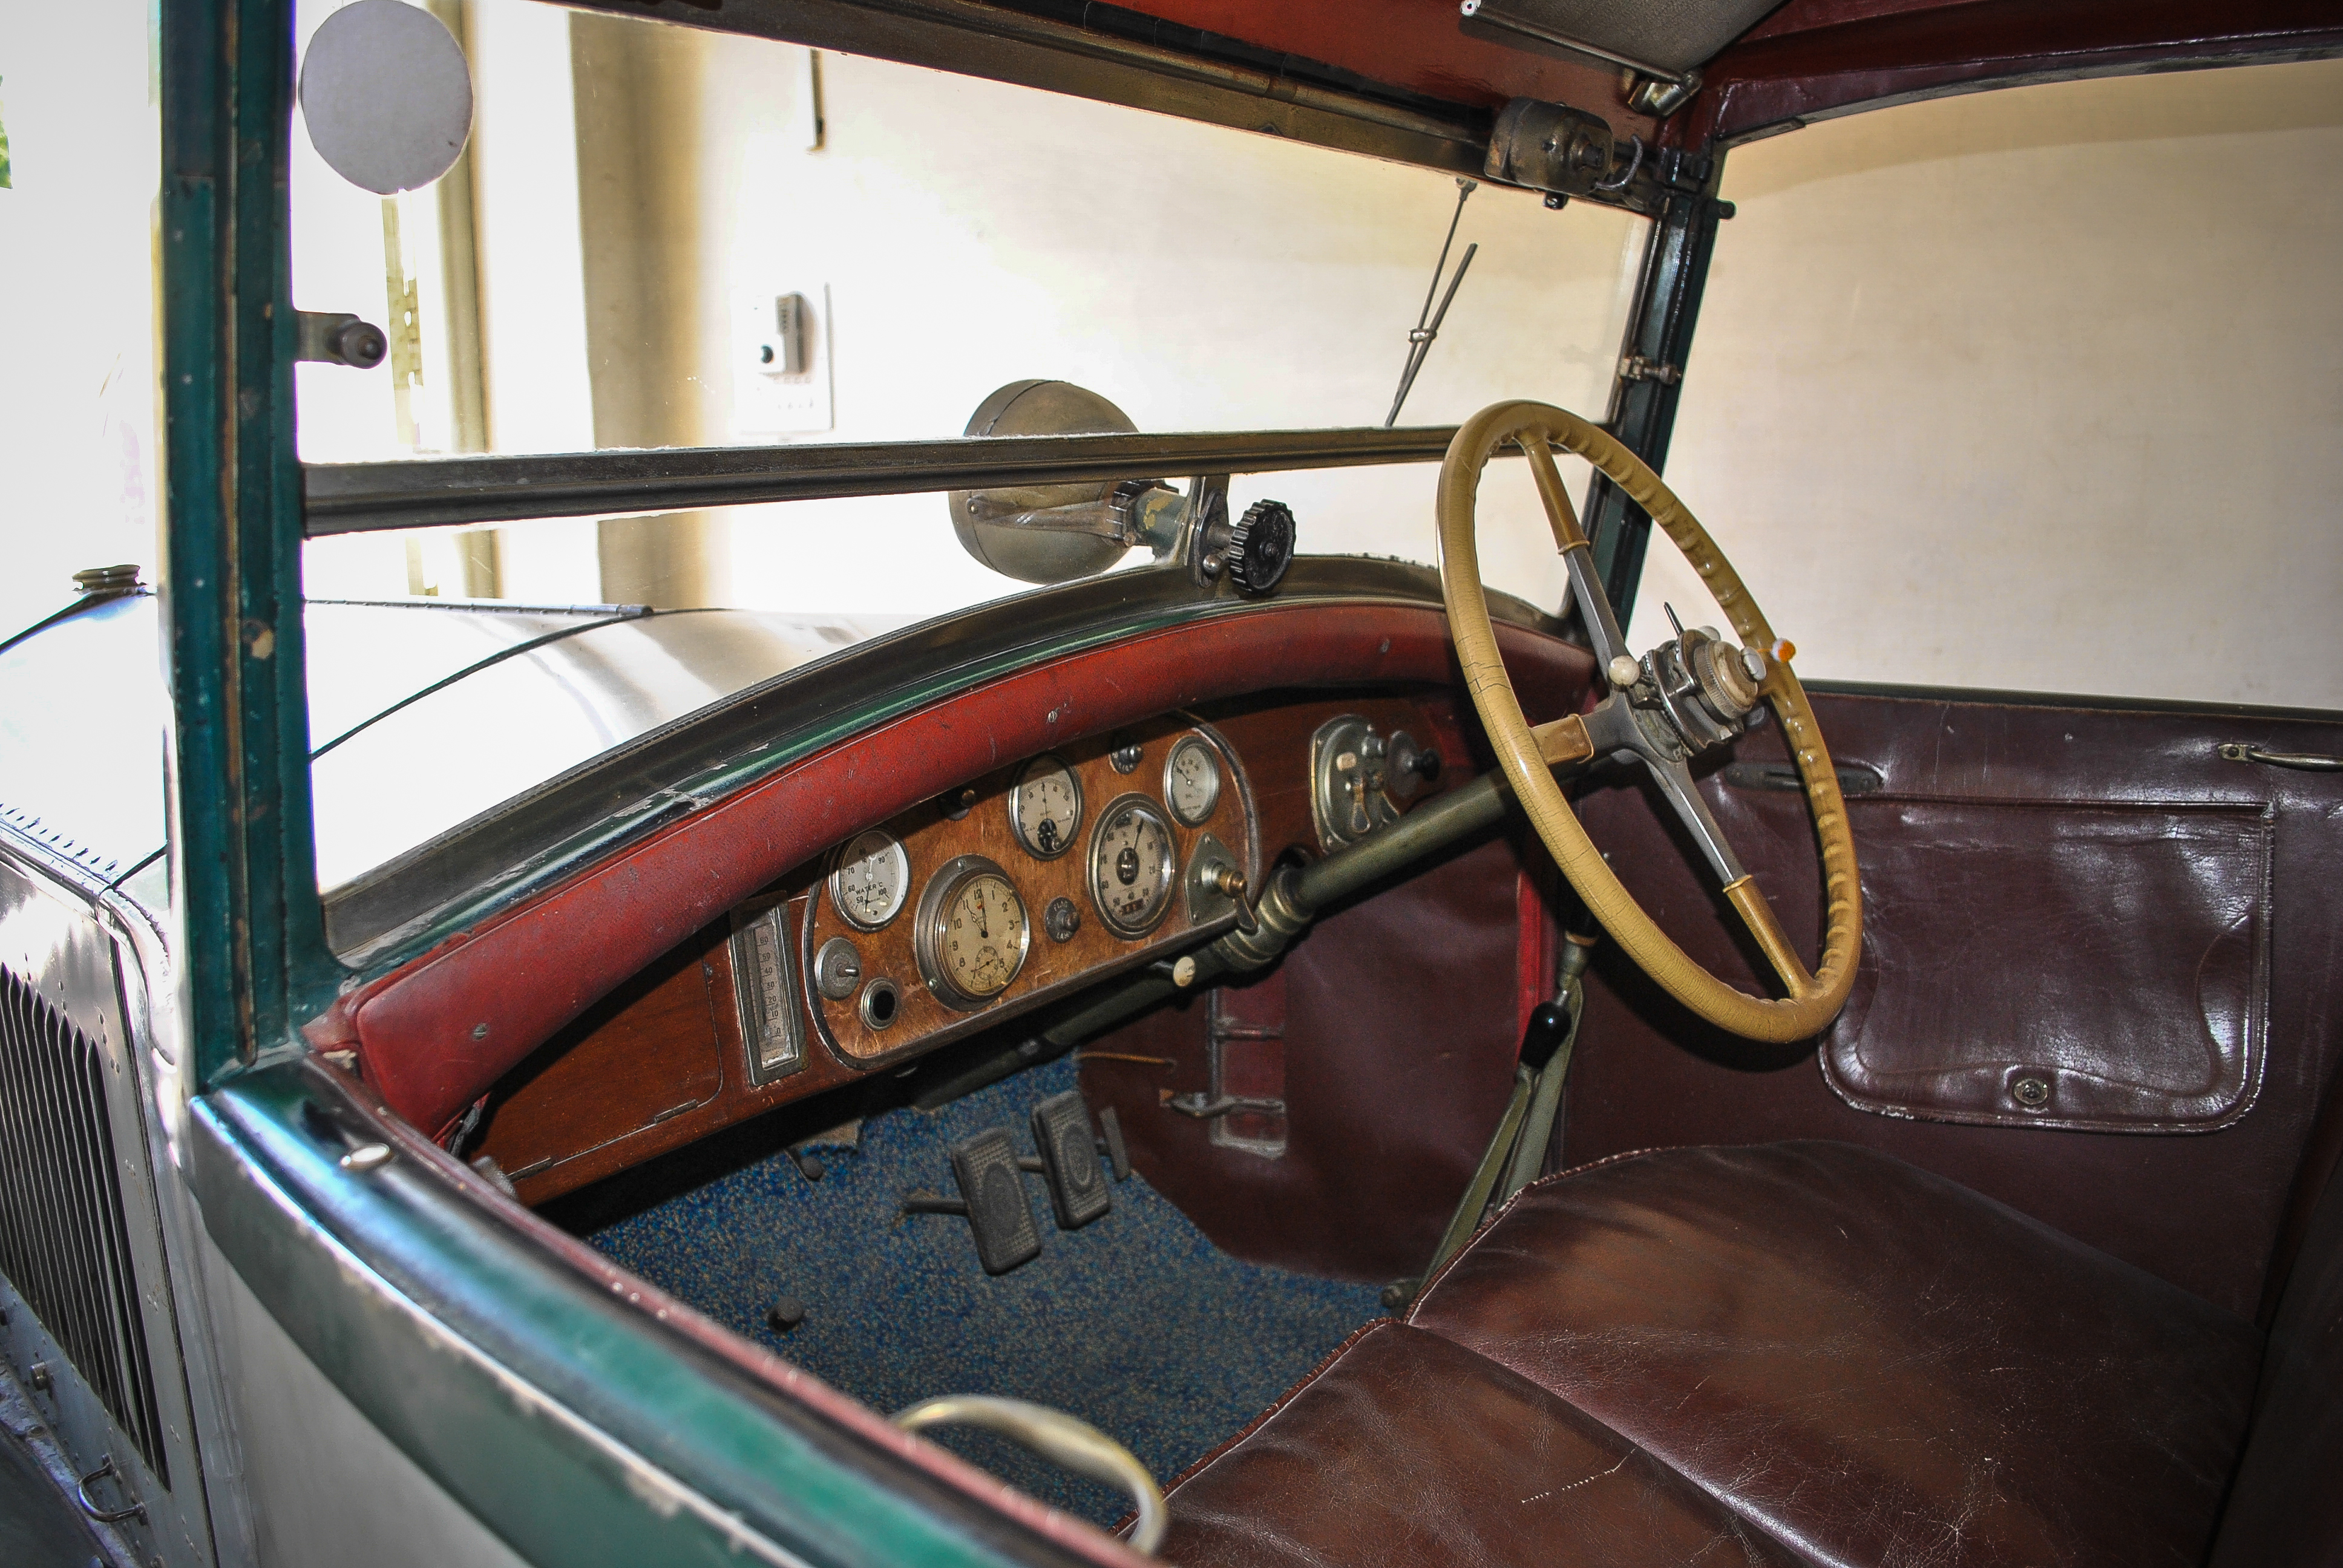 File Inside View Of Rolls Royce 1930 31 Model In Vintage Classic Car Collection Museum Of Udaipur Jpg Wikimedia Commons